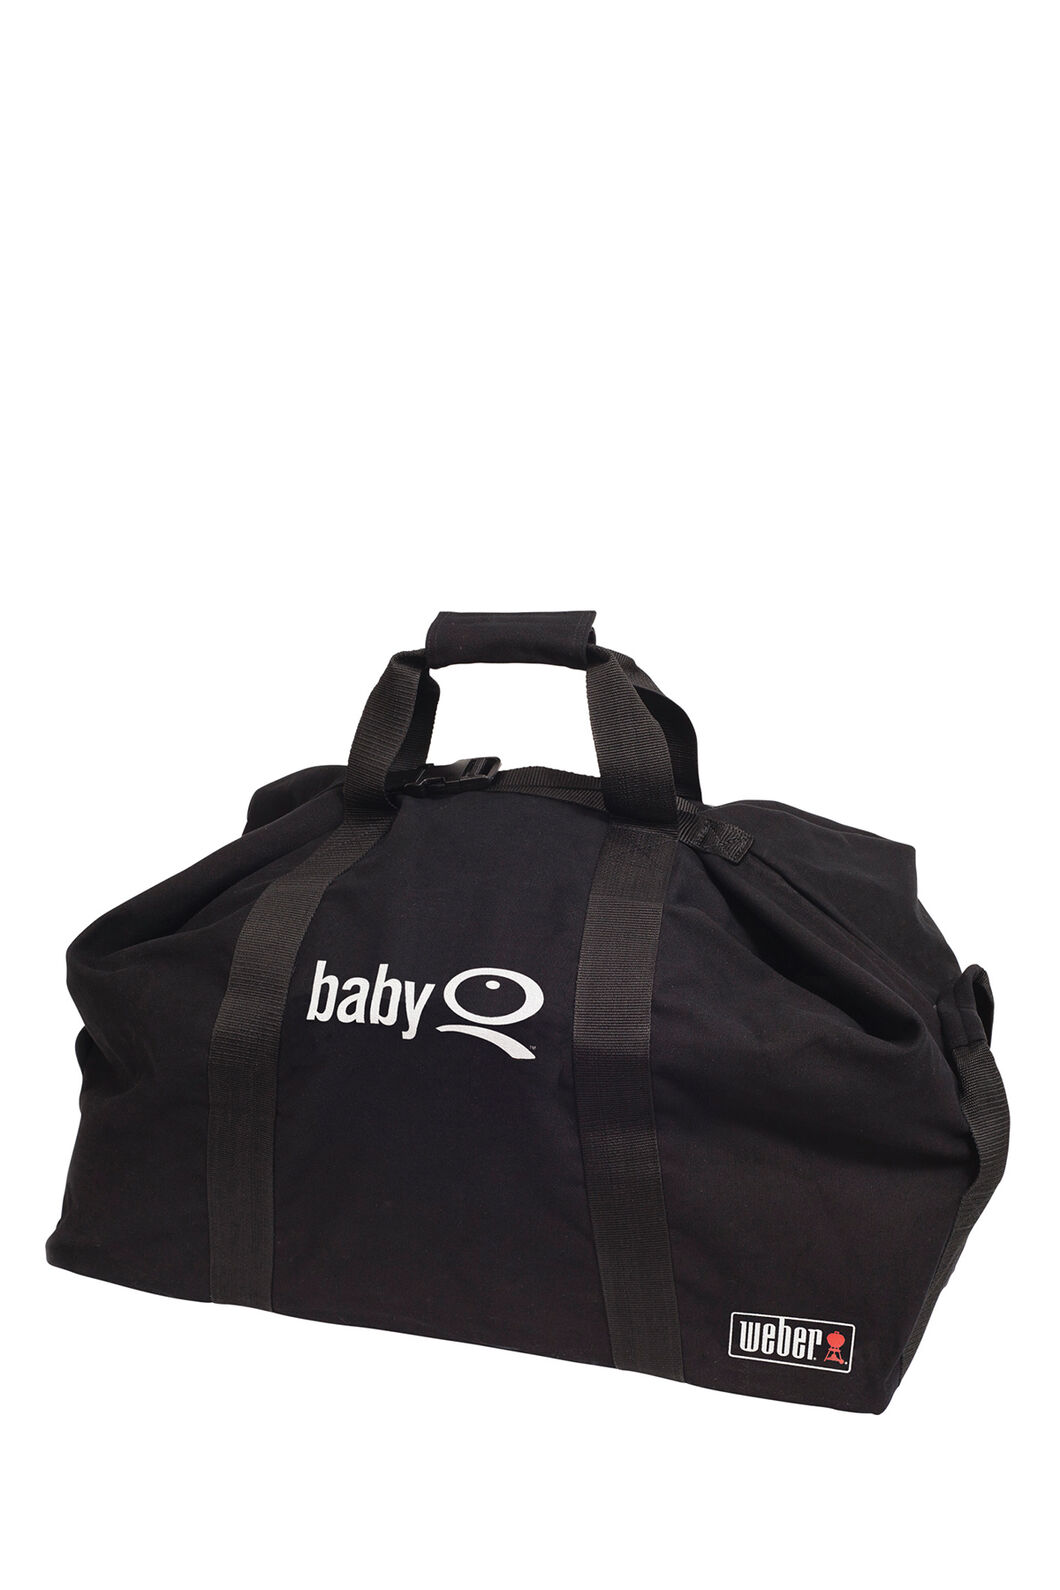 Weber Baby Q Duffle Bag, None, hi-res